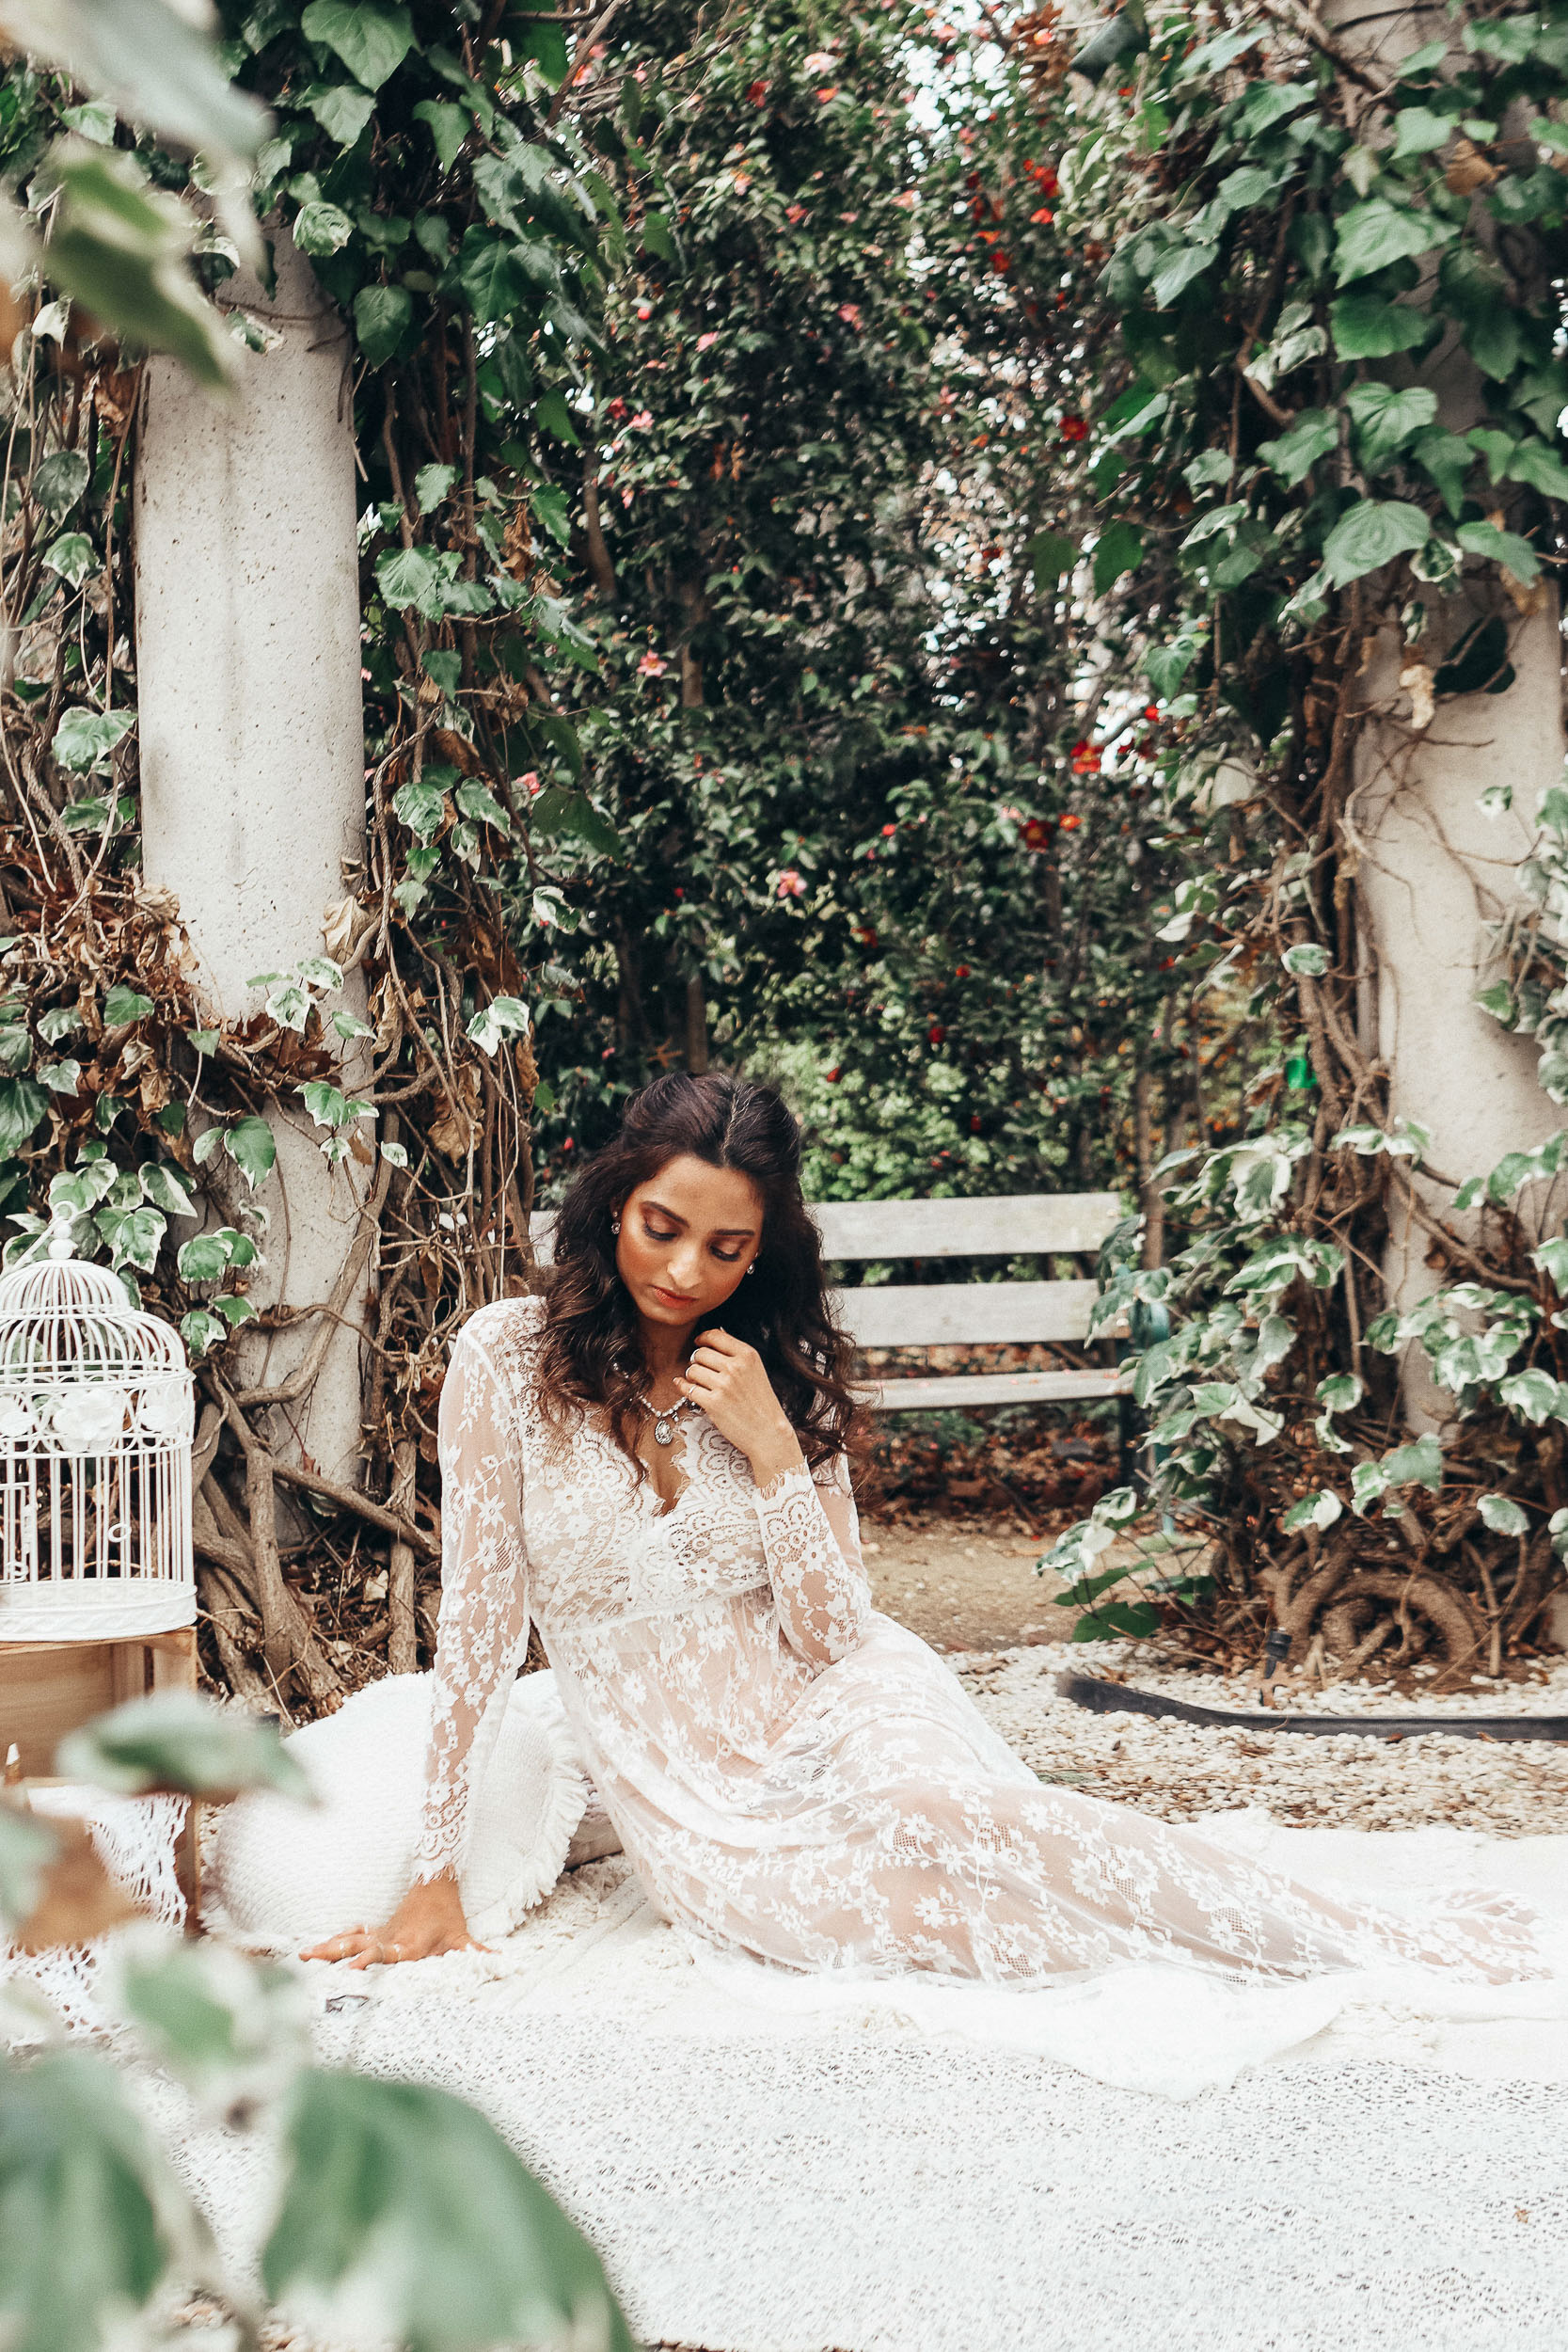 Girl sitting on a mat in forest wearing white lace gown, moody shot-to discuss PMS and mental health